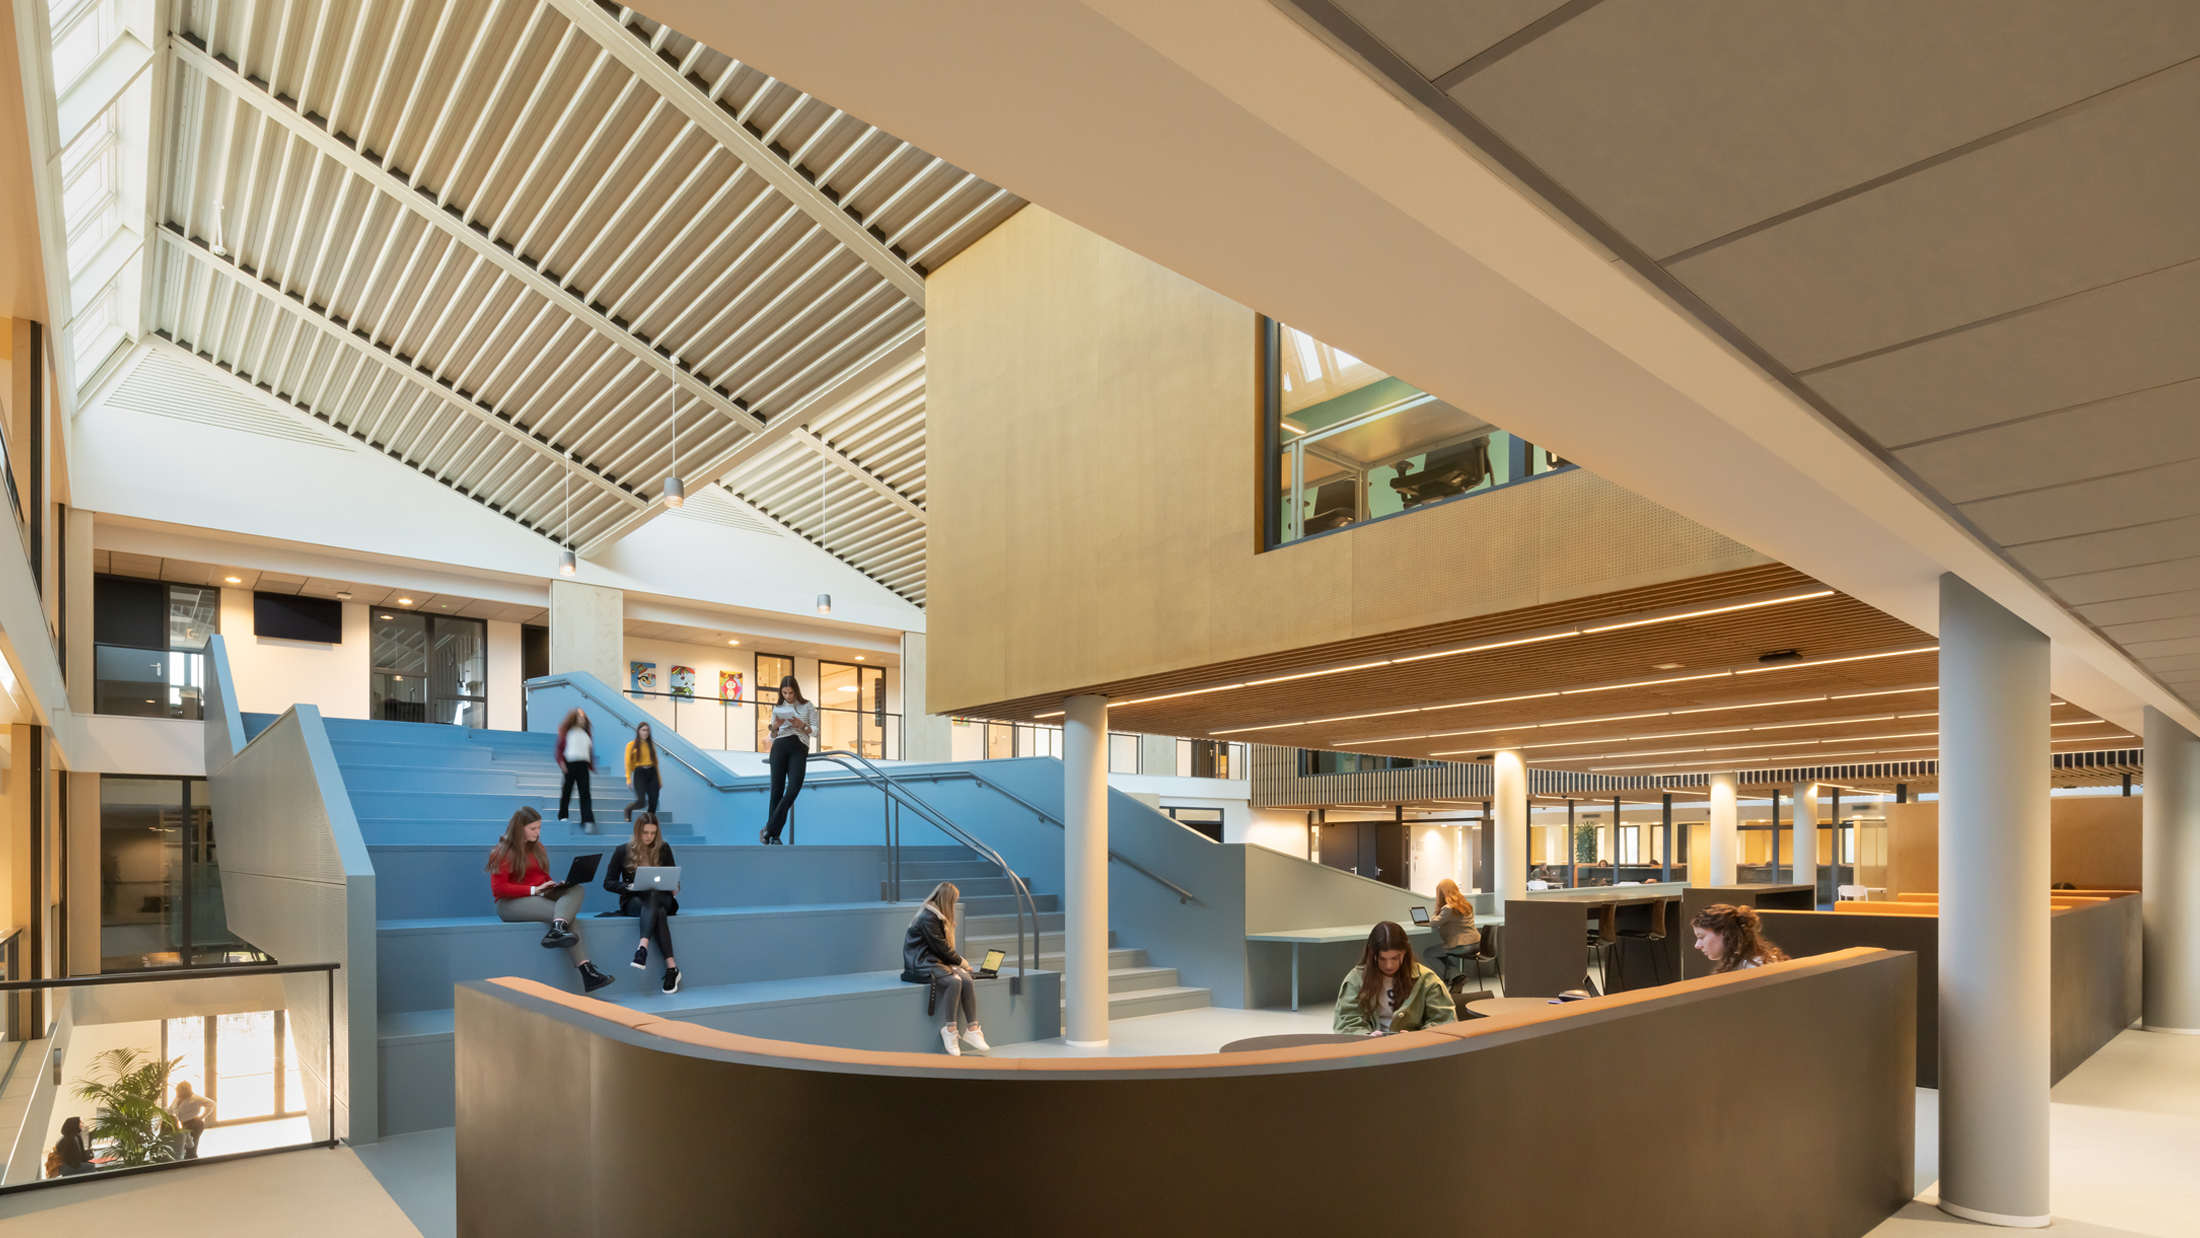 Christelijk Lyceum Veenendaal, designed by NOAHH | Network Oriented Architecture